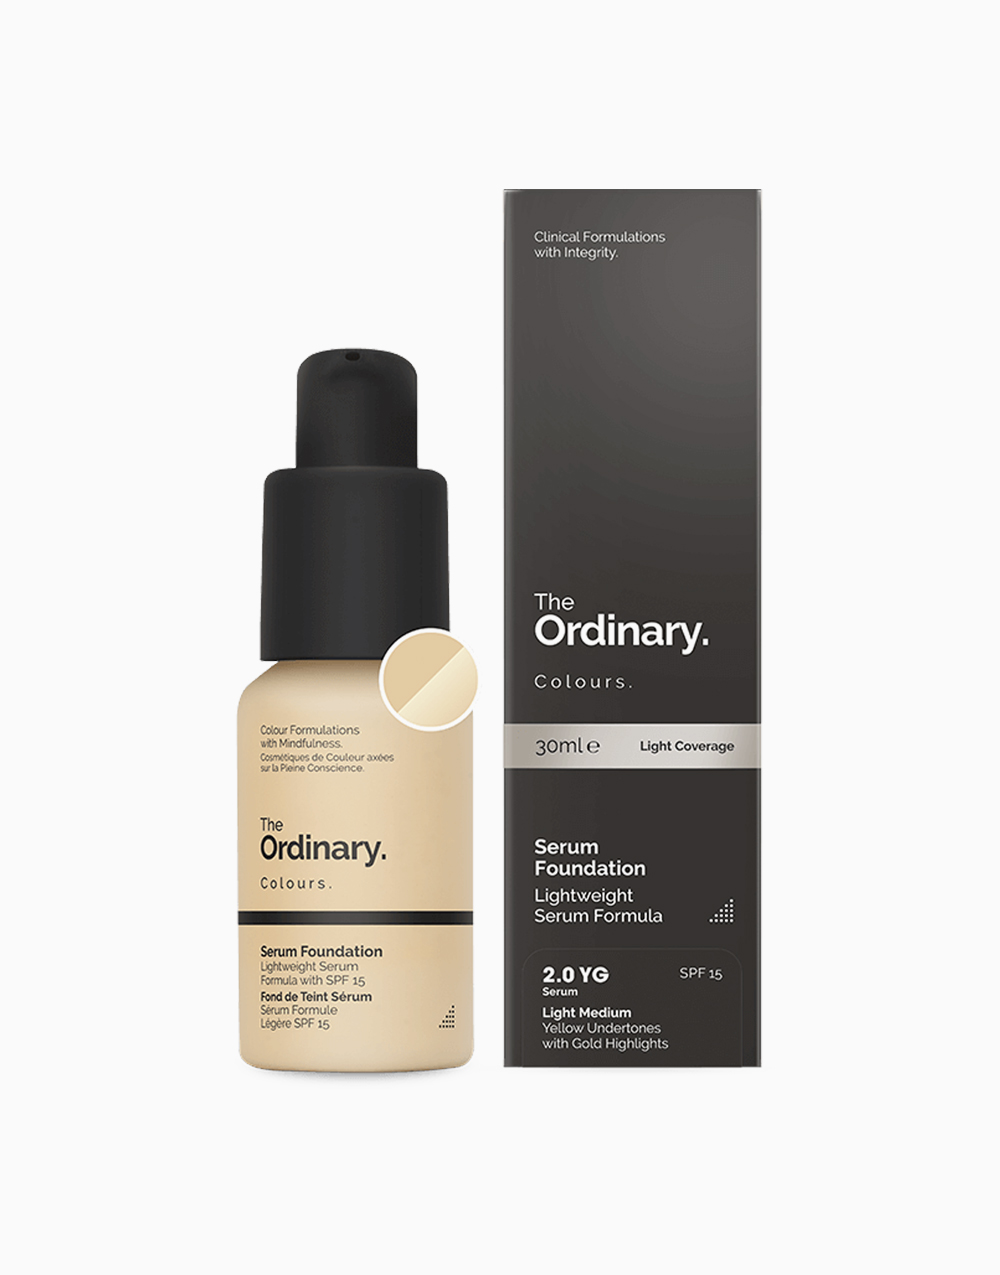 Serum Foundation by The Ordinary | 2.0YG